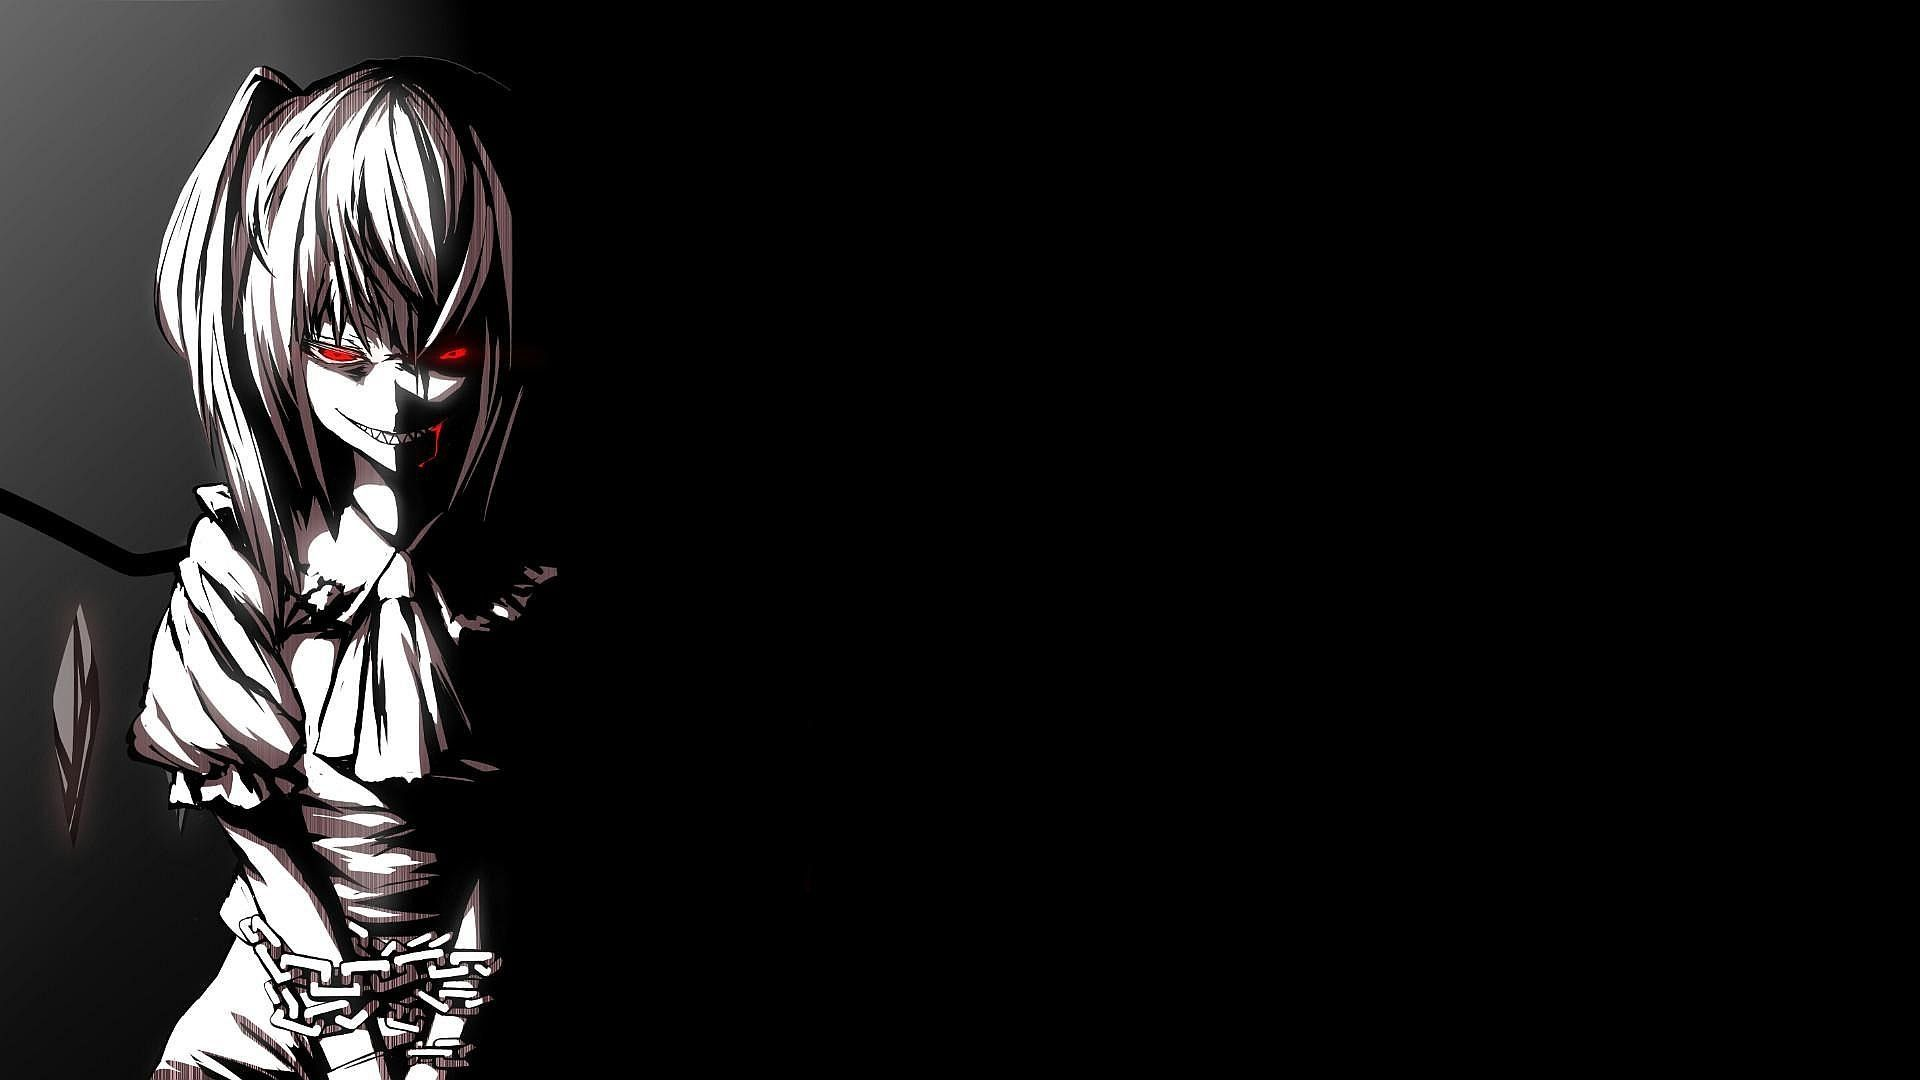 Dark anime girl wallpaper 6329